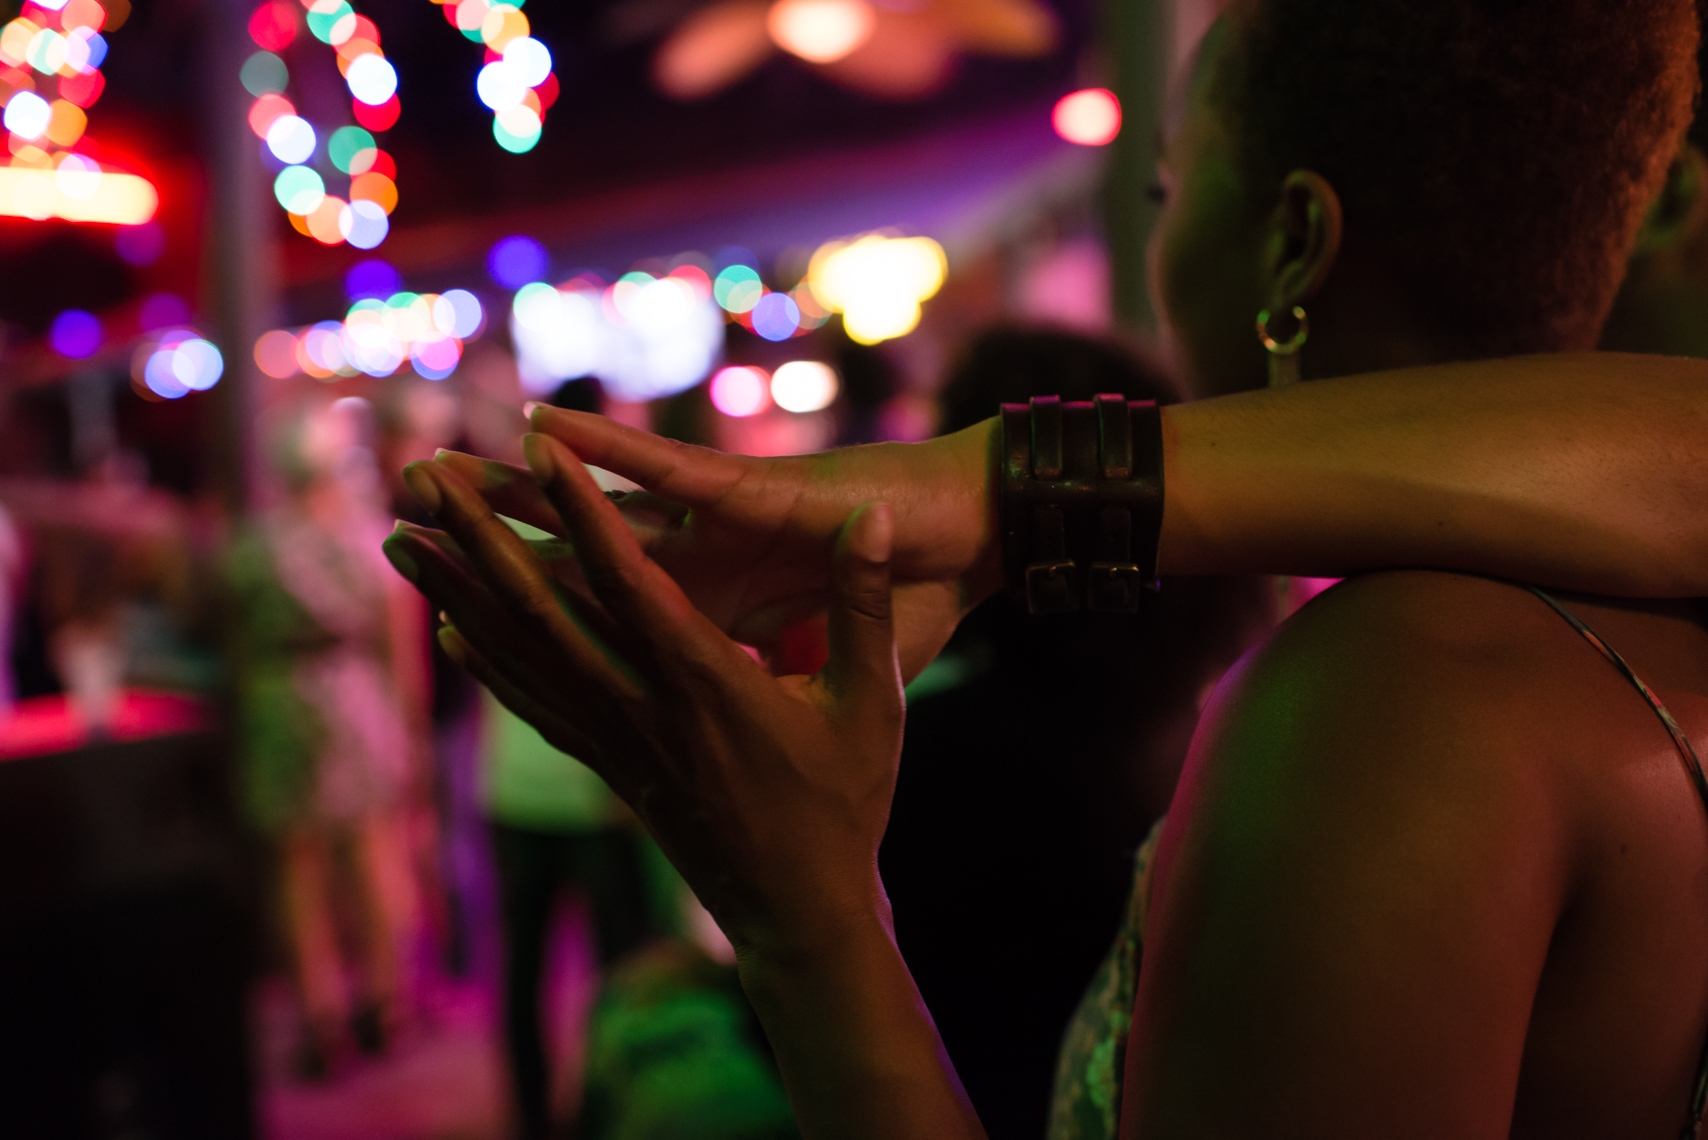 Holding hands in a club, night, bar, New Orleans, young love, New Orleans Photographer, Nashville, Atlanta, Texas, Austin, Chicago, Washington, D.C., DC, together, advertising, beverage, nightlife, photographer, Kristina Krug